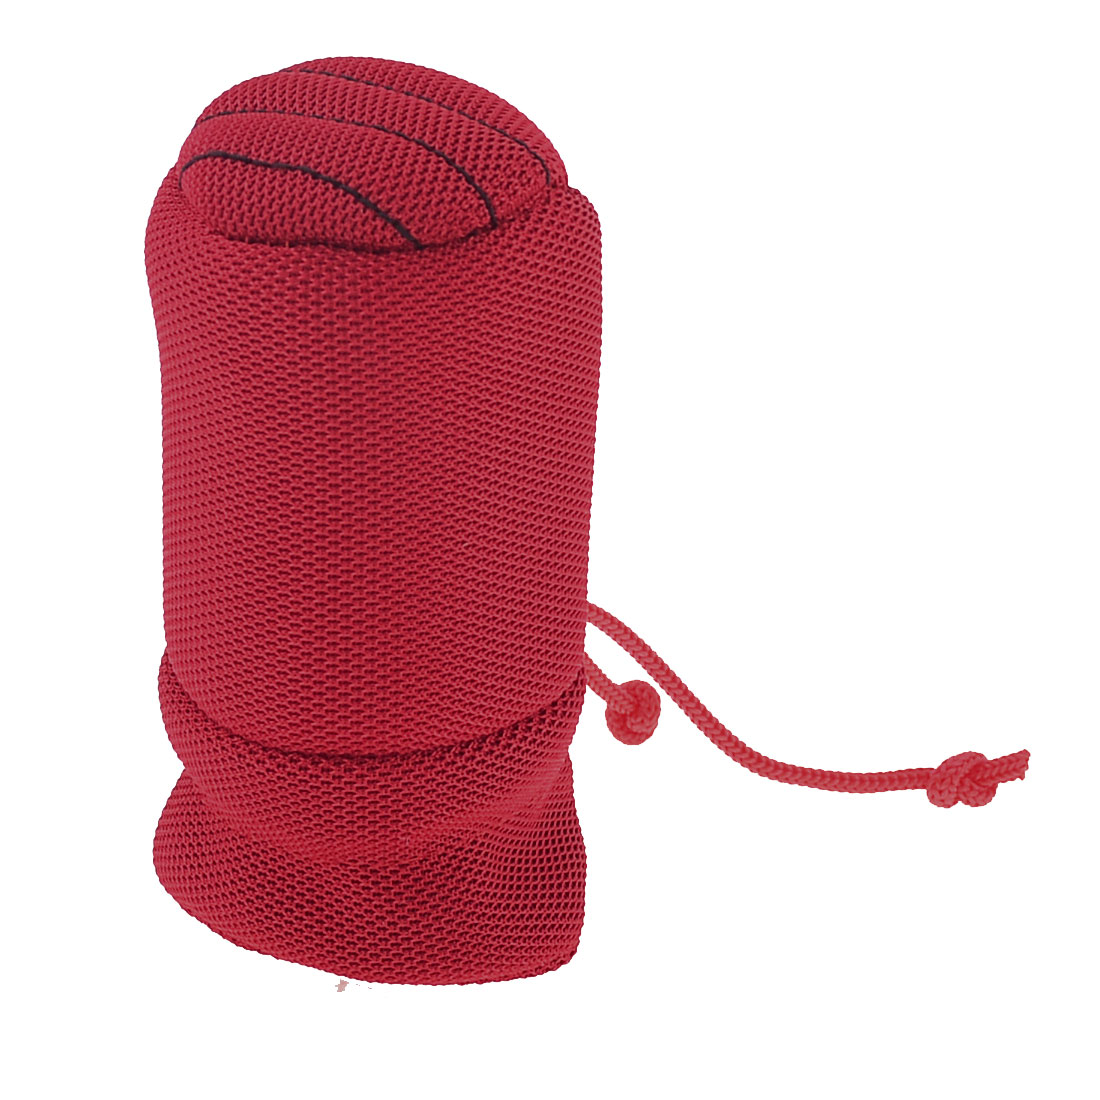 Red Nonslip Cotton Blends Gear Set Hand Shift Knob Boot Cover for Auto